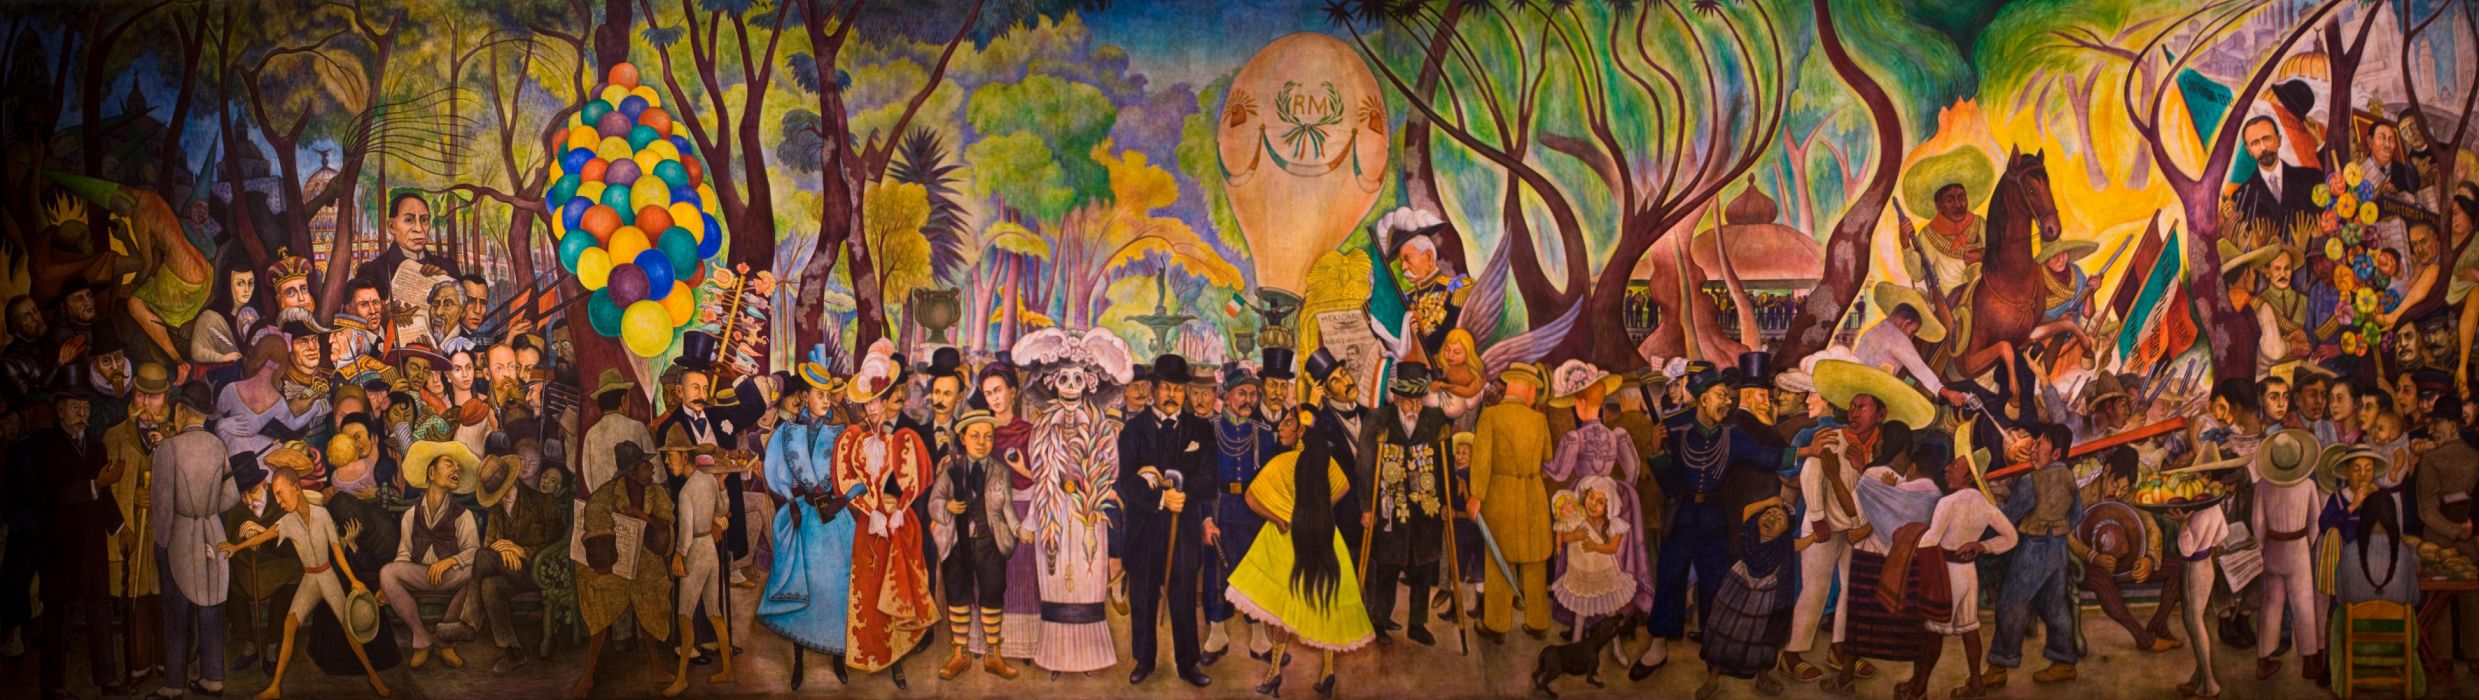 Dream of a Sunday Afternoon in Alameda Park by Diego Rivera wallpaper